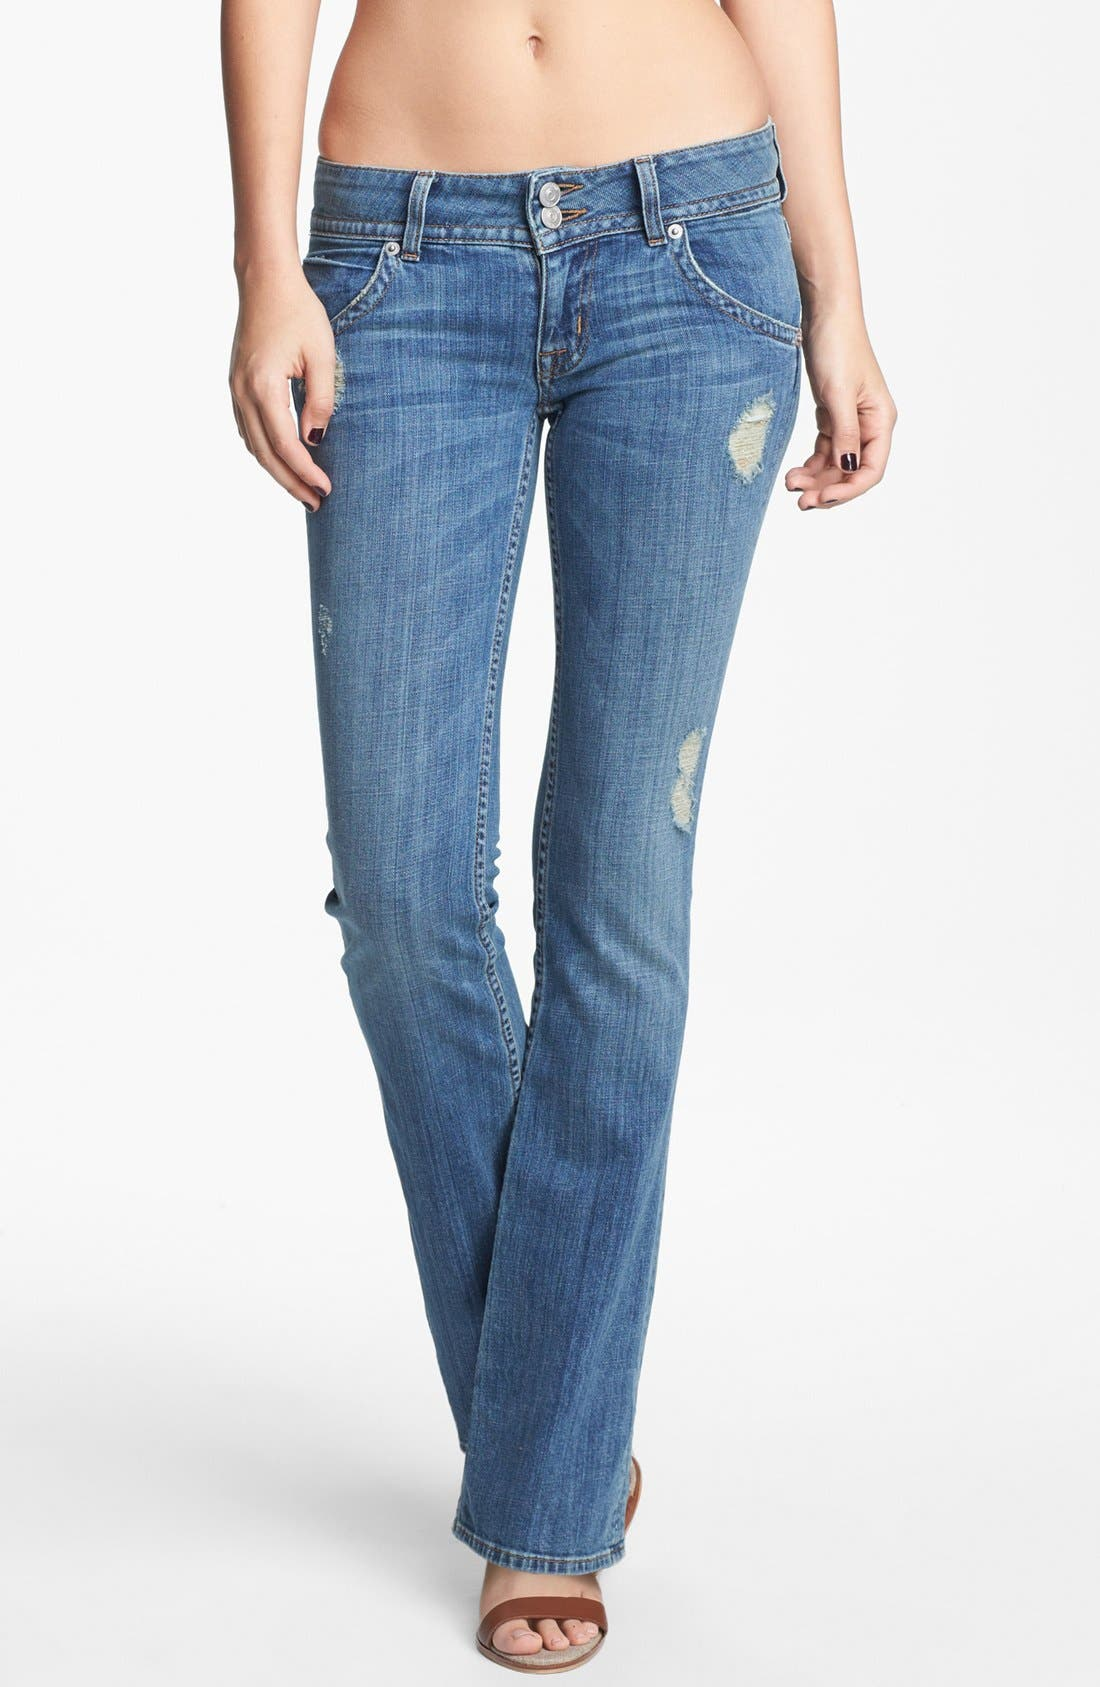 Main Image - Hudson Jeans Triangle Pocket Bootcut Stretch Jeans (Vintage Napoli) (Petite)